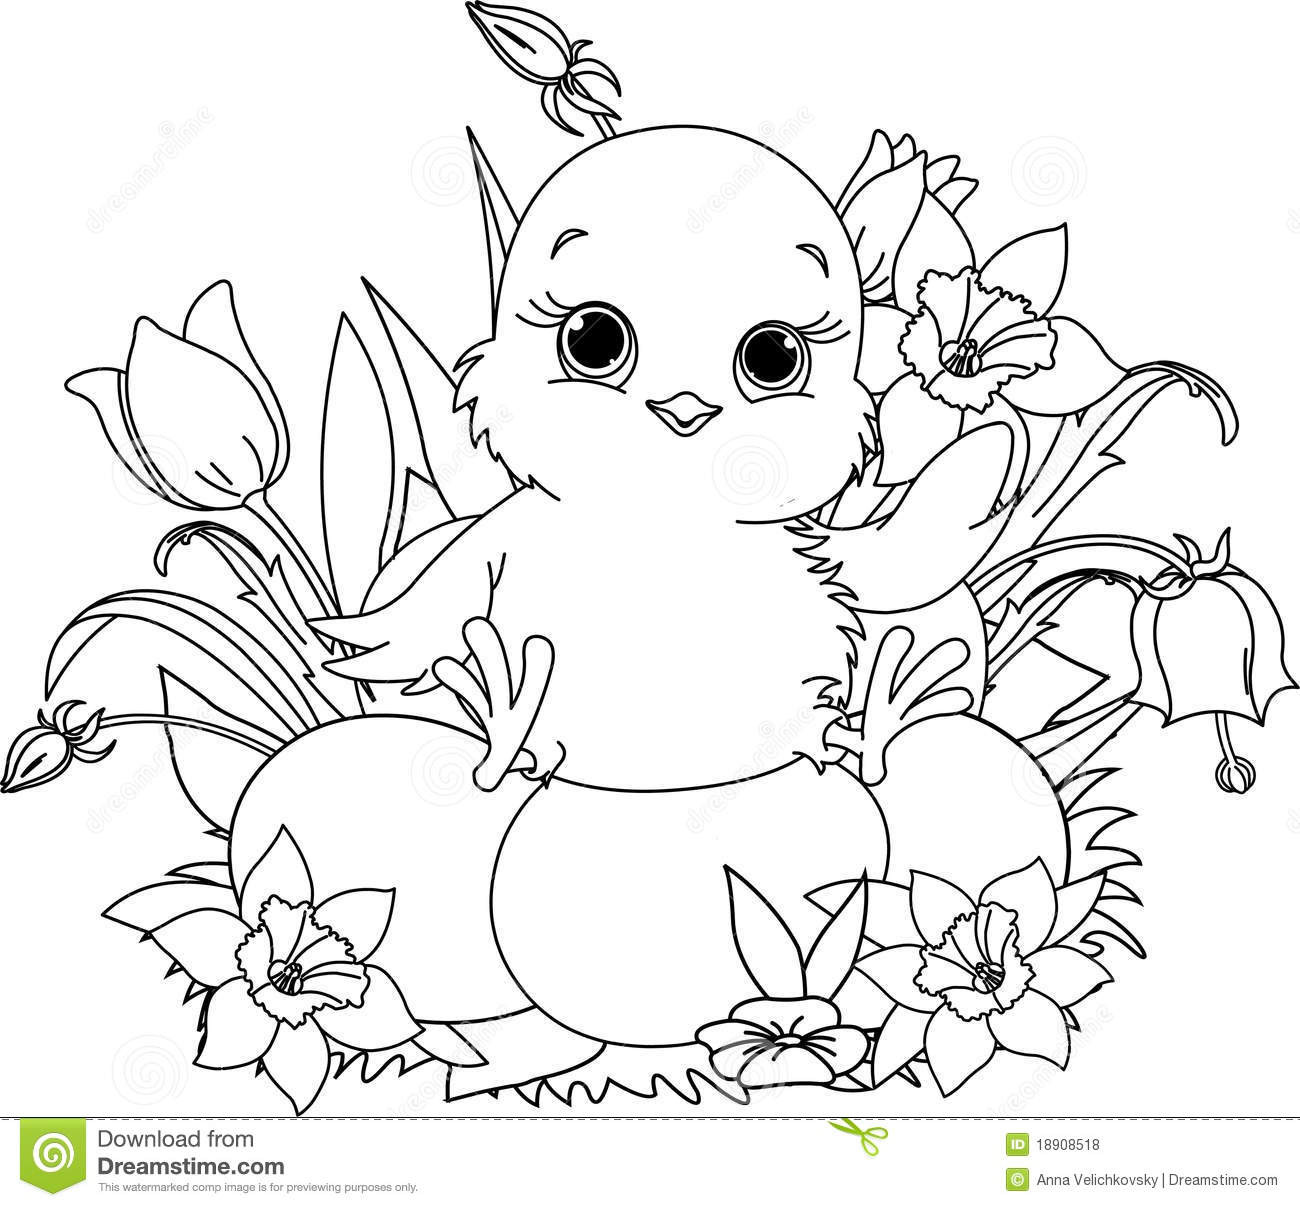 Best ideas about Easter Coloring Pages For Girls . Save or Pin Happy Easter Chick Coloring Page Stock Vector Now.